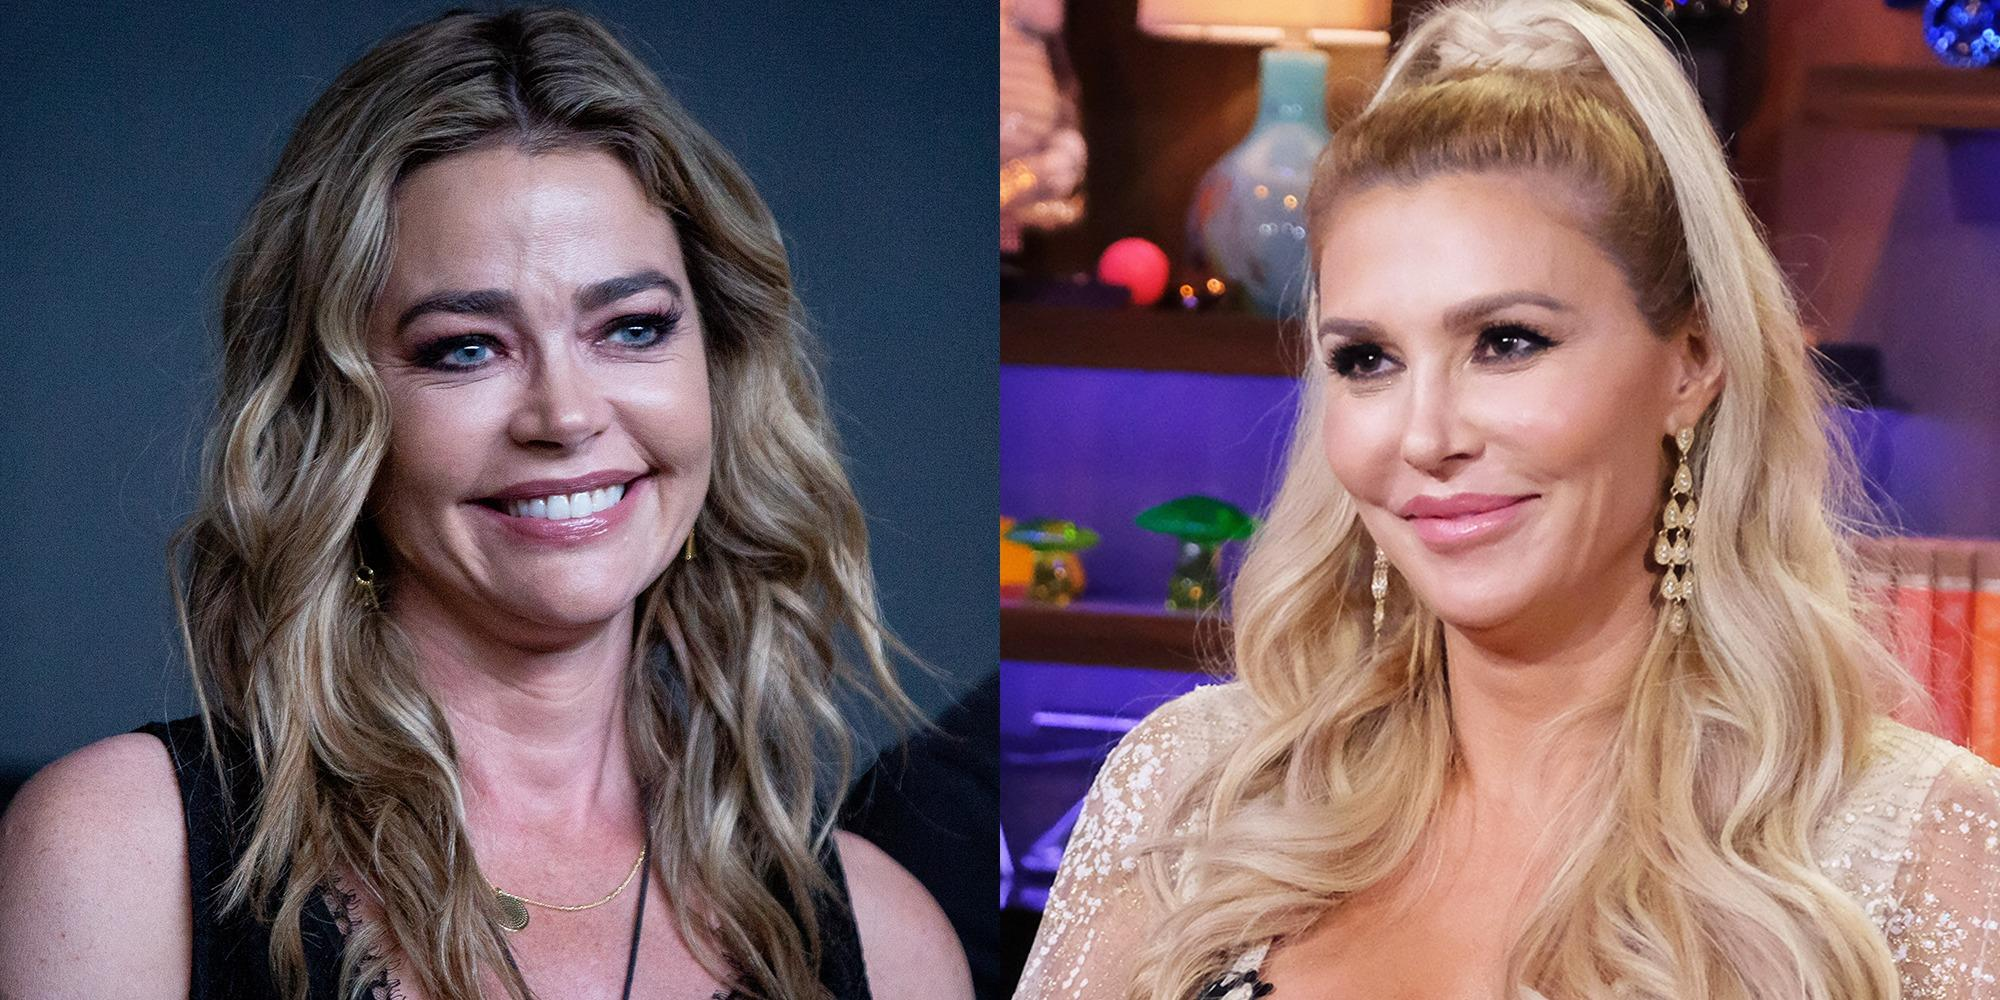 Denise Richards Addresses The Affair Rumors With Brandi Glanville After She Posts Kissing Pic!